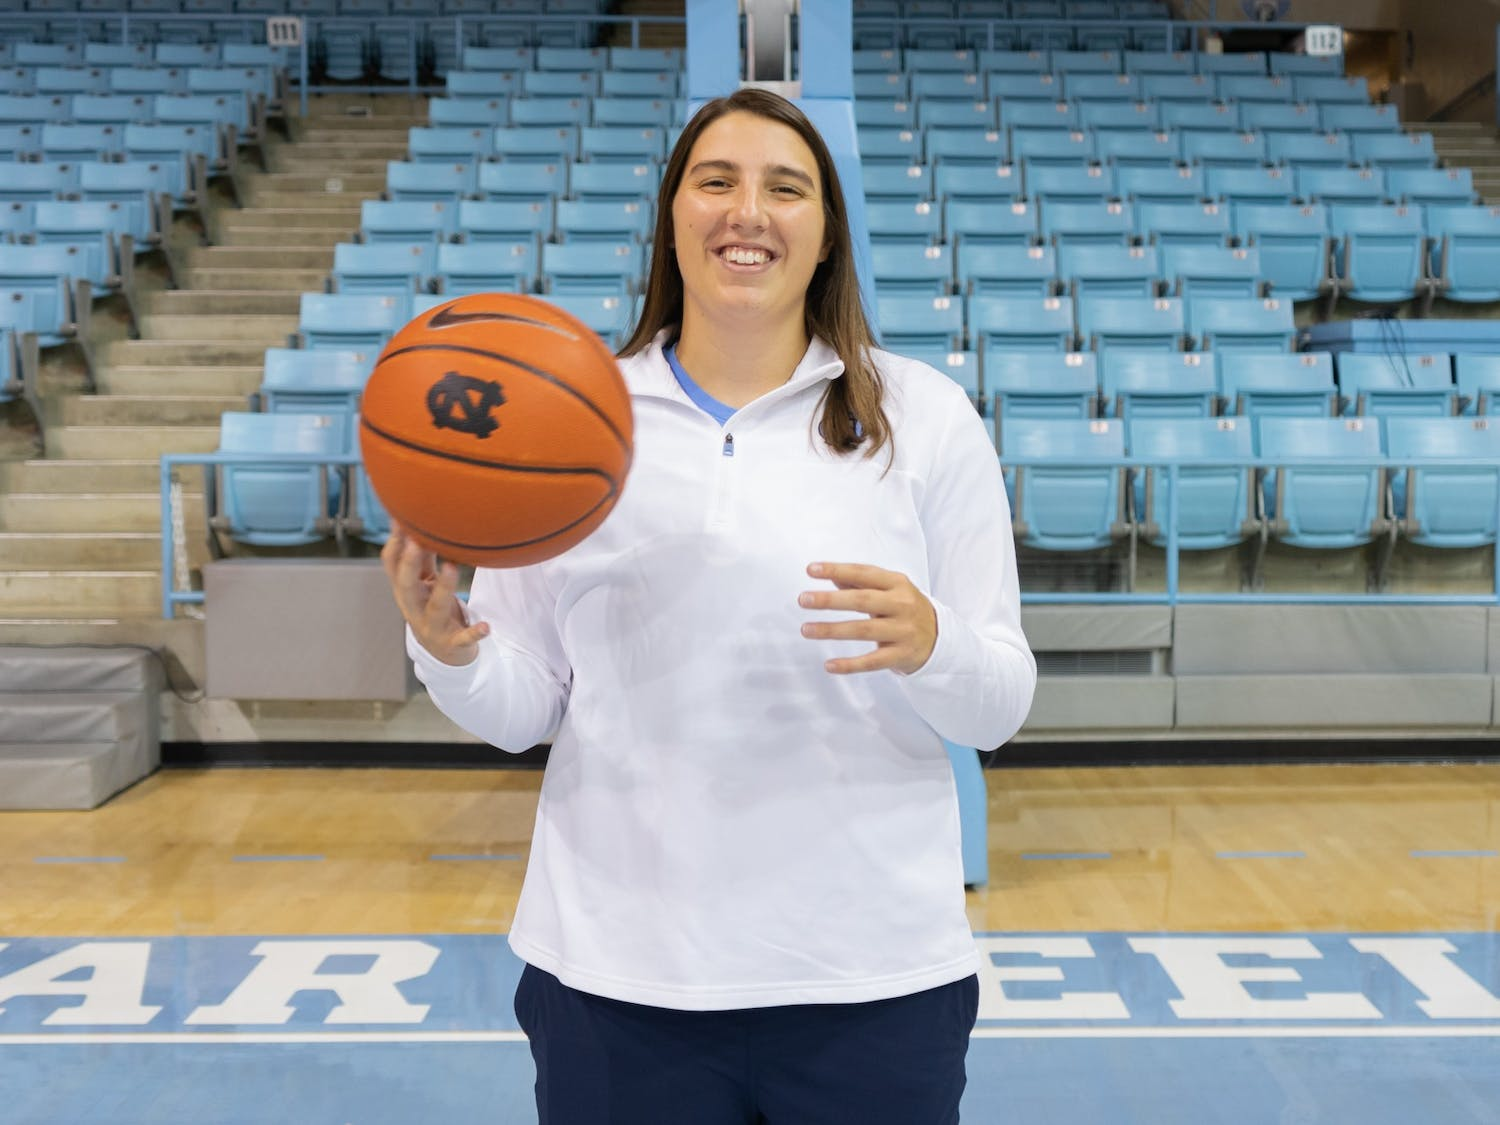 Liz Roberts, former UNC Women's Basketball player, poses in Carmichael Arena on Sept. 5. Roberts was recently promoted to Director of Recruiting Management and Student-Athlete Engagement.